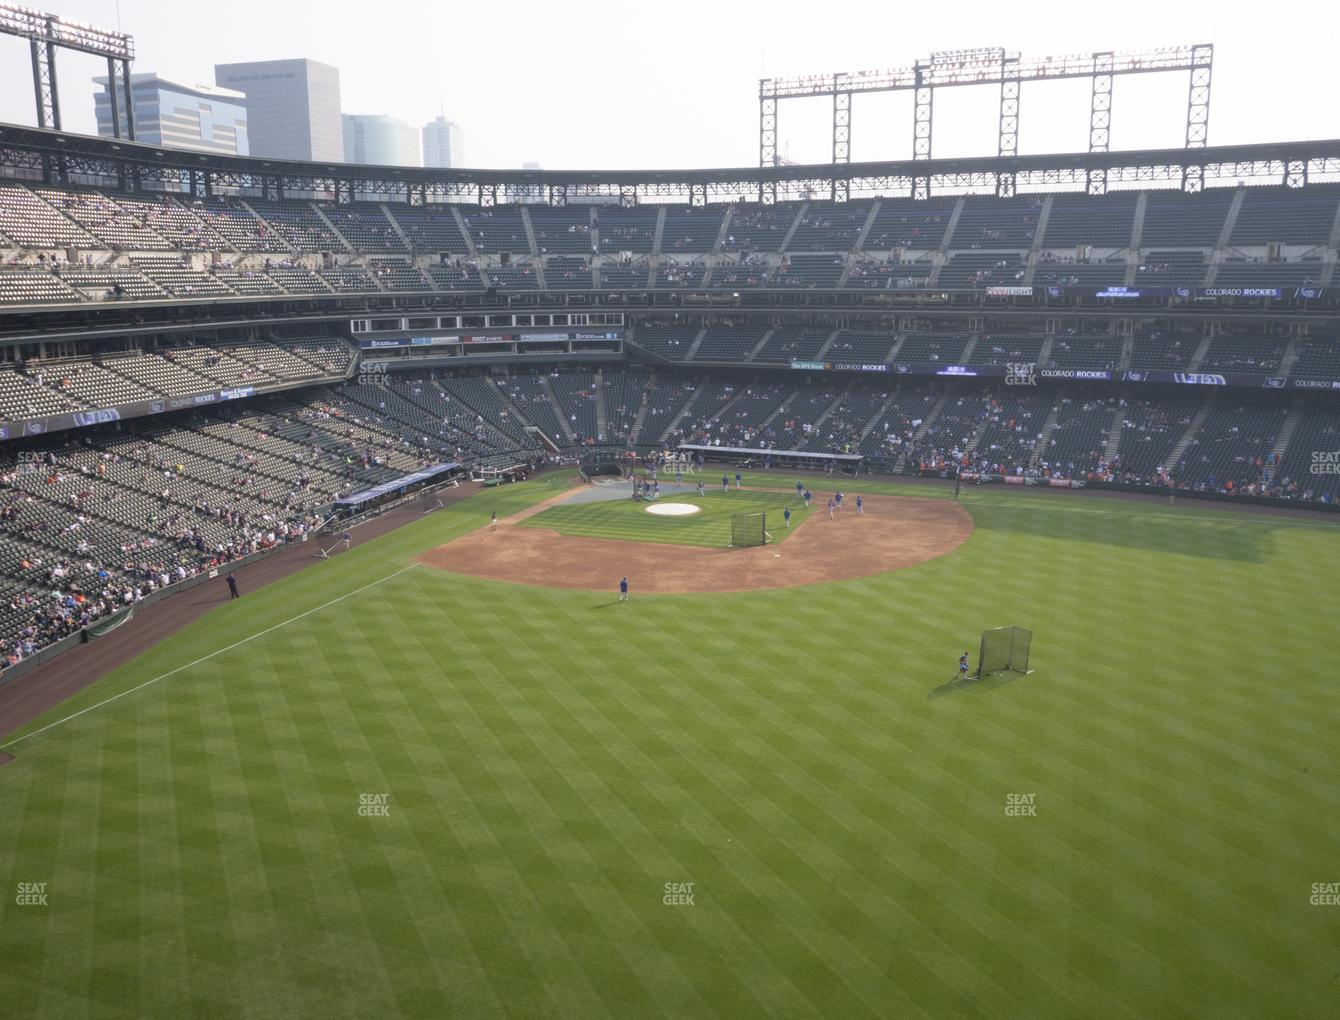 Colorado Rockies at Coors Field Lower 304 View